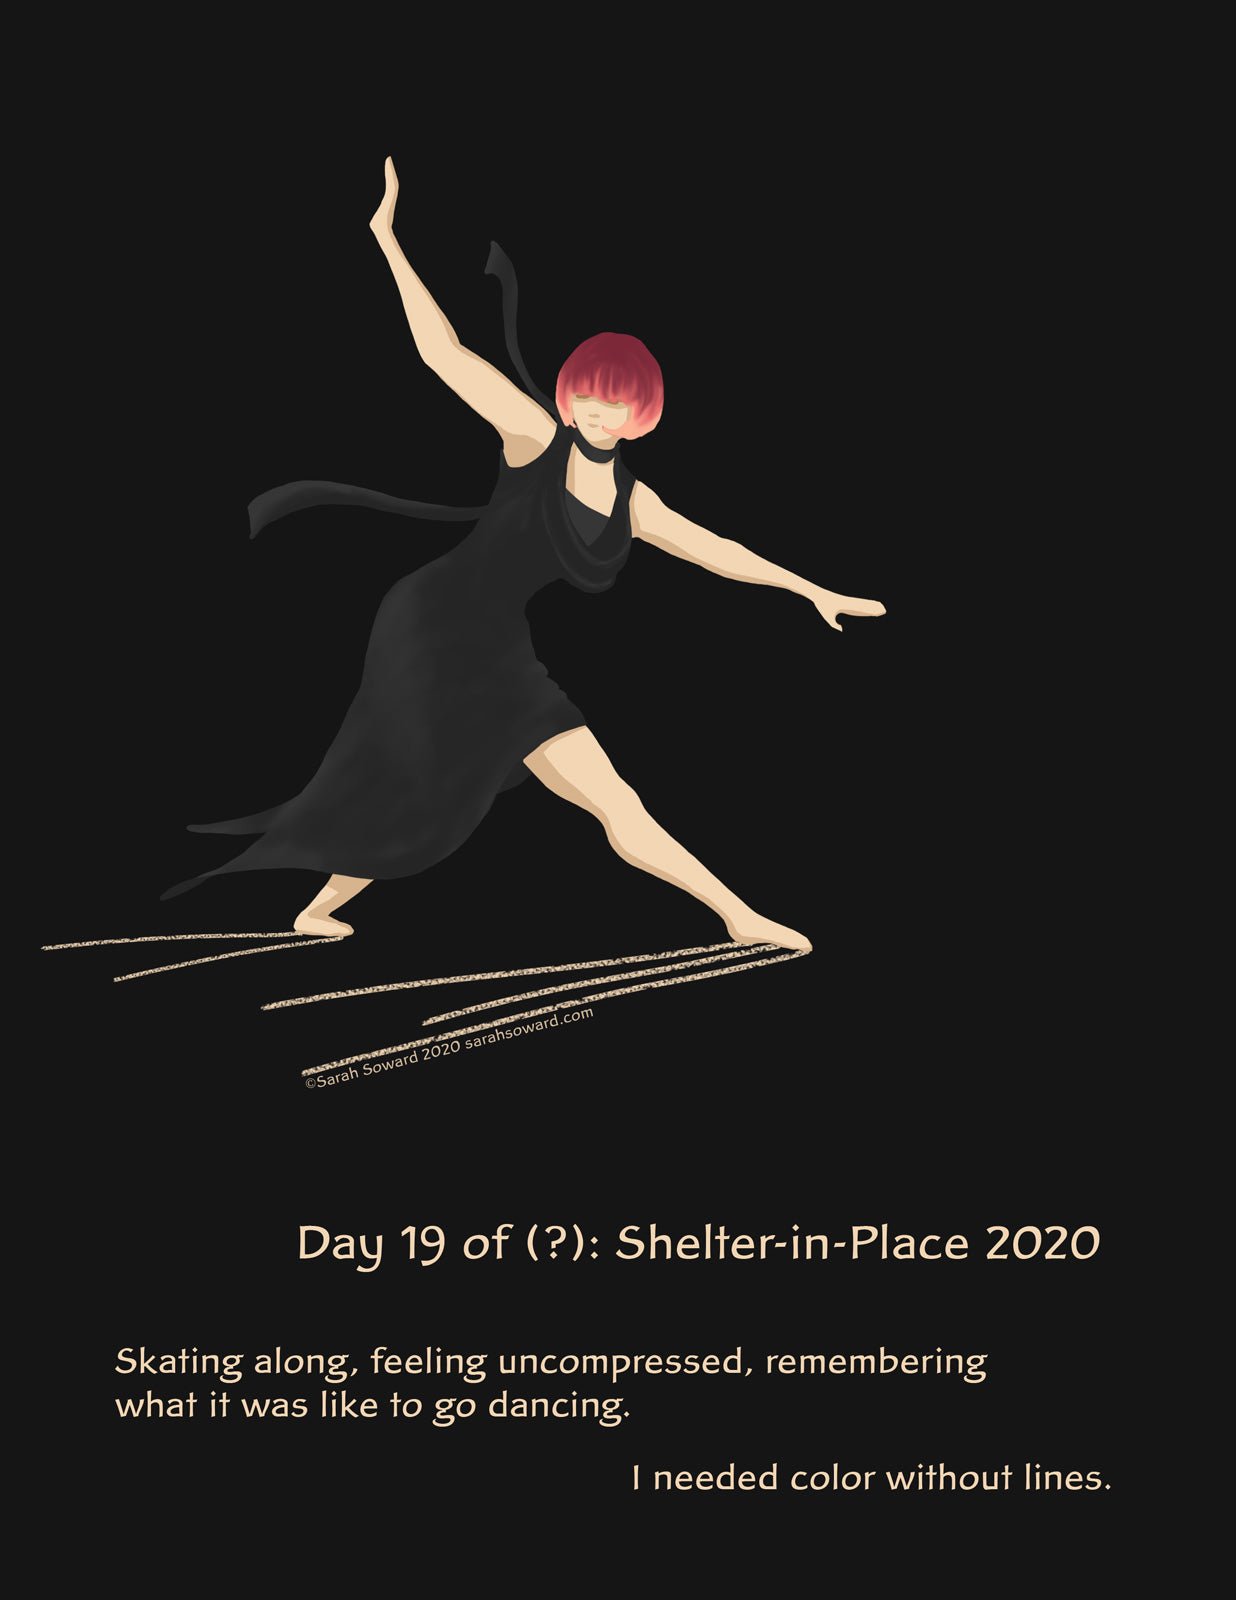 Image of a woman in a black dress dancing against a black background. The text on the image reads, Skating along, feeling uncompressed, remembering what it was like to go dancing. I needed color without lines.